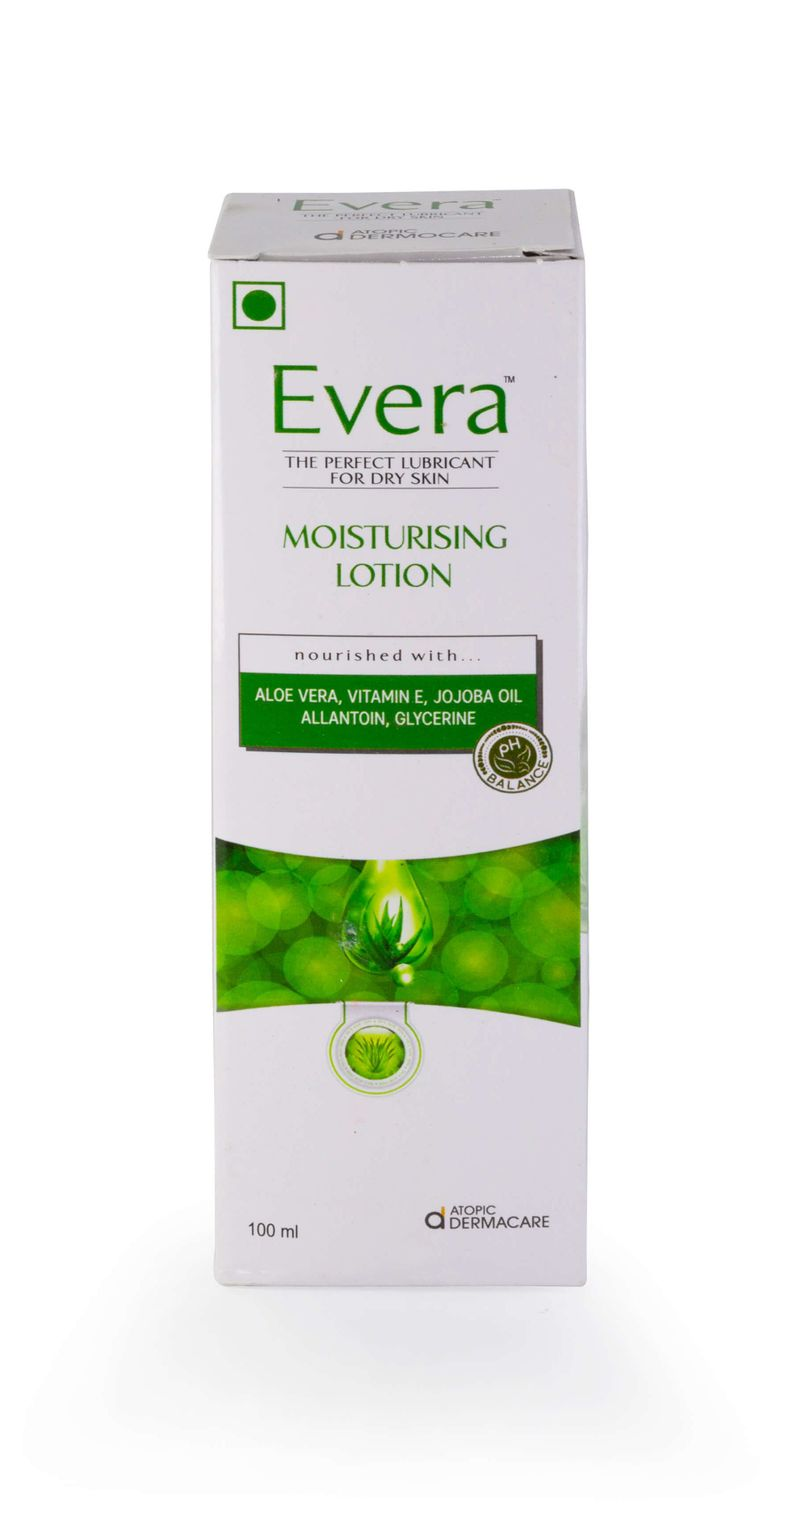 Evera Lotion